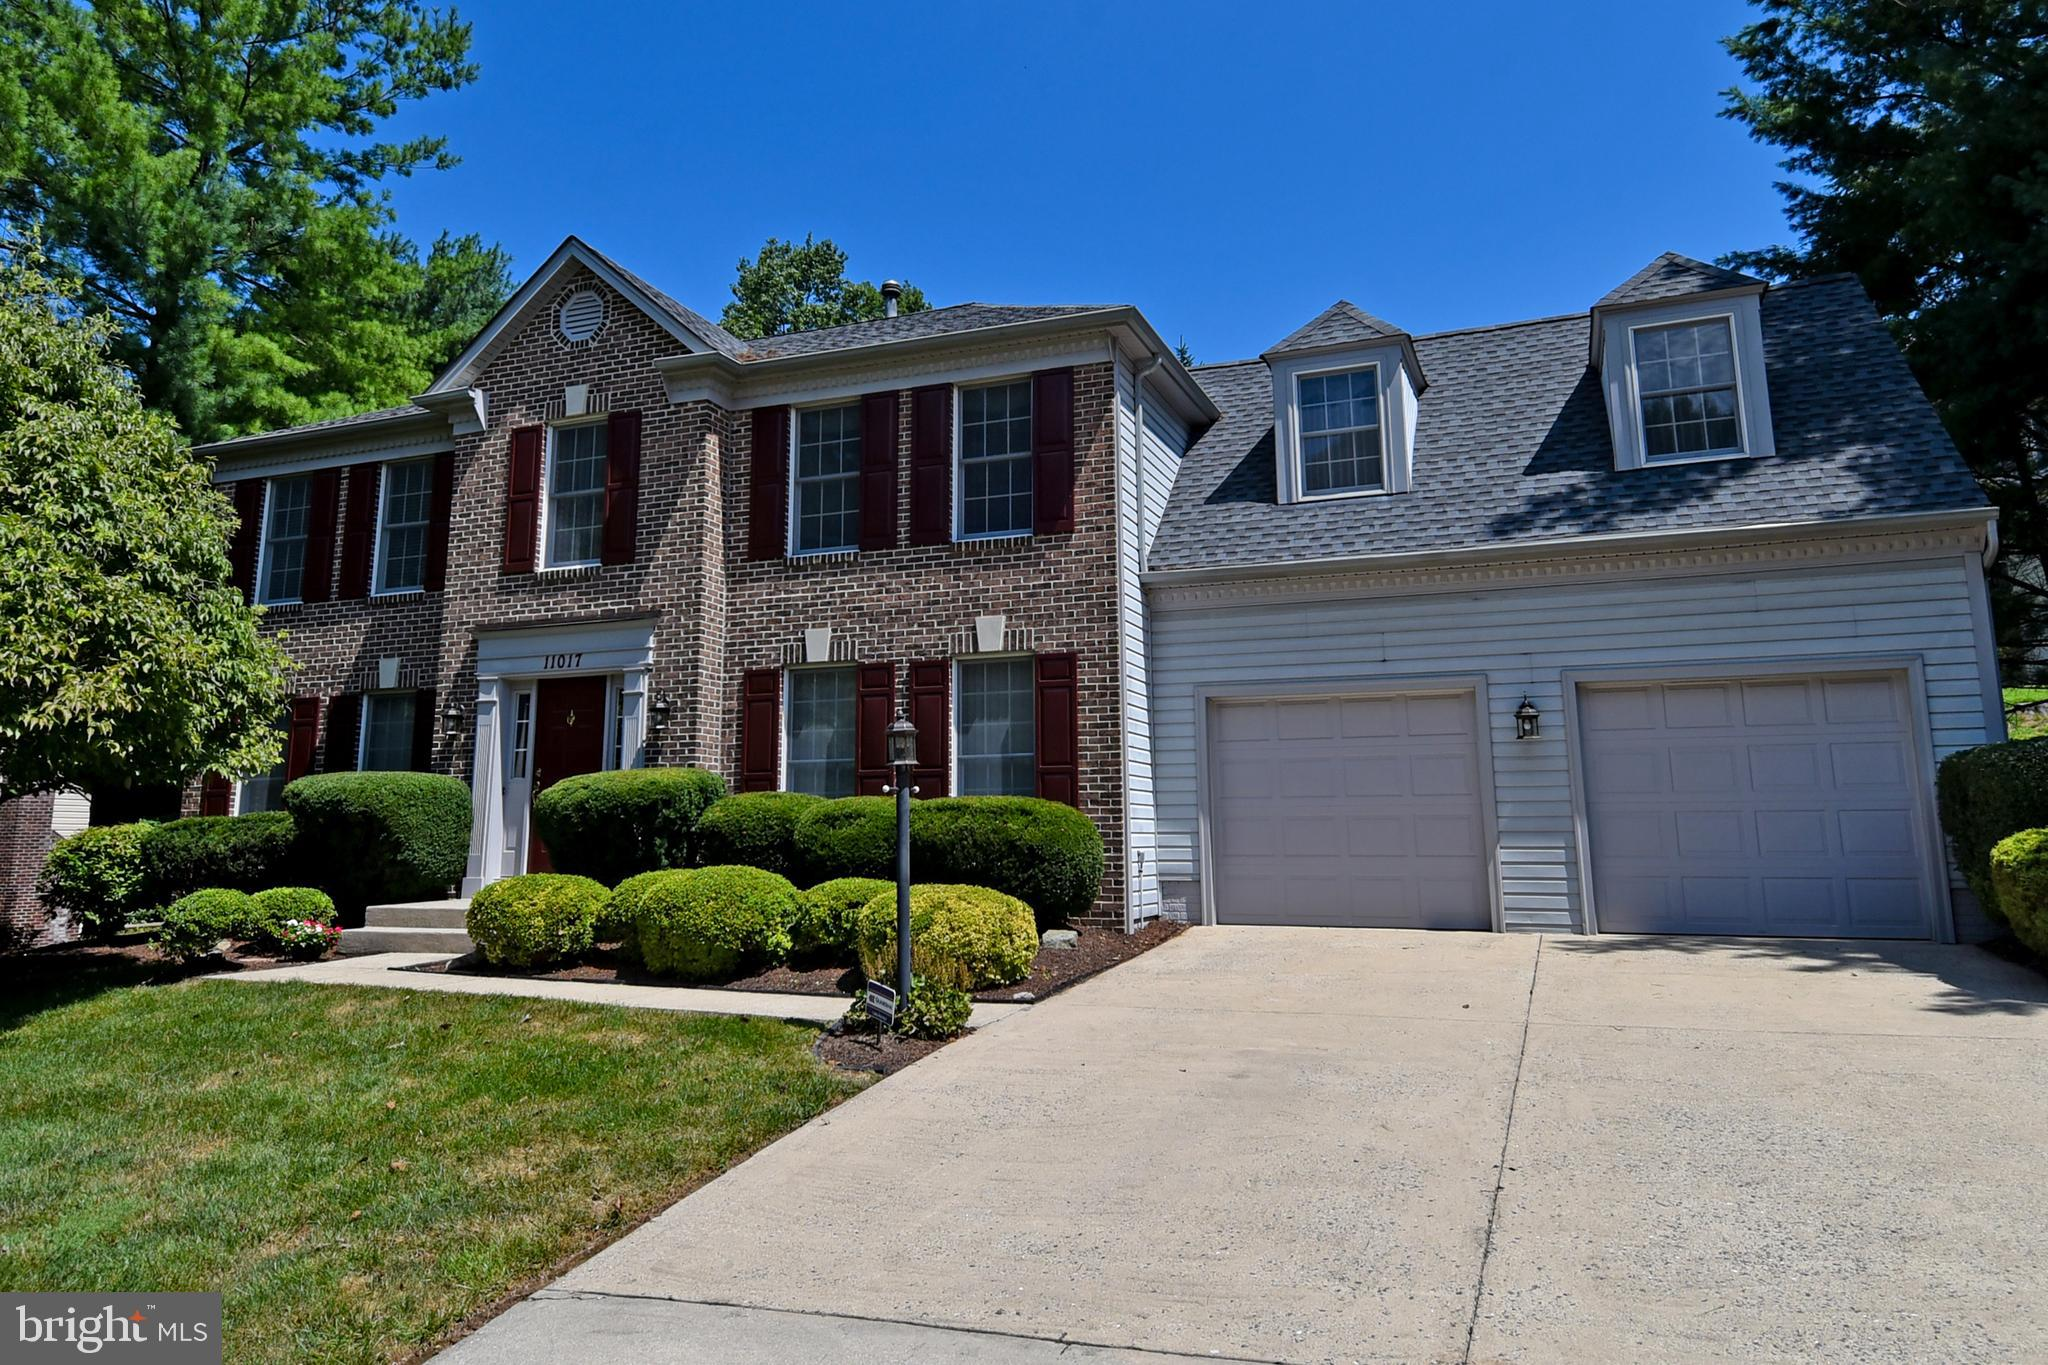 11017 Cross Laurel Drive, Germantown, MD 20876